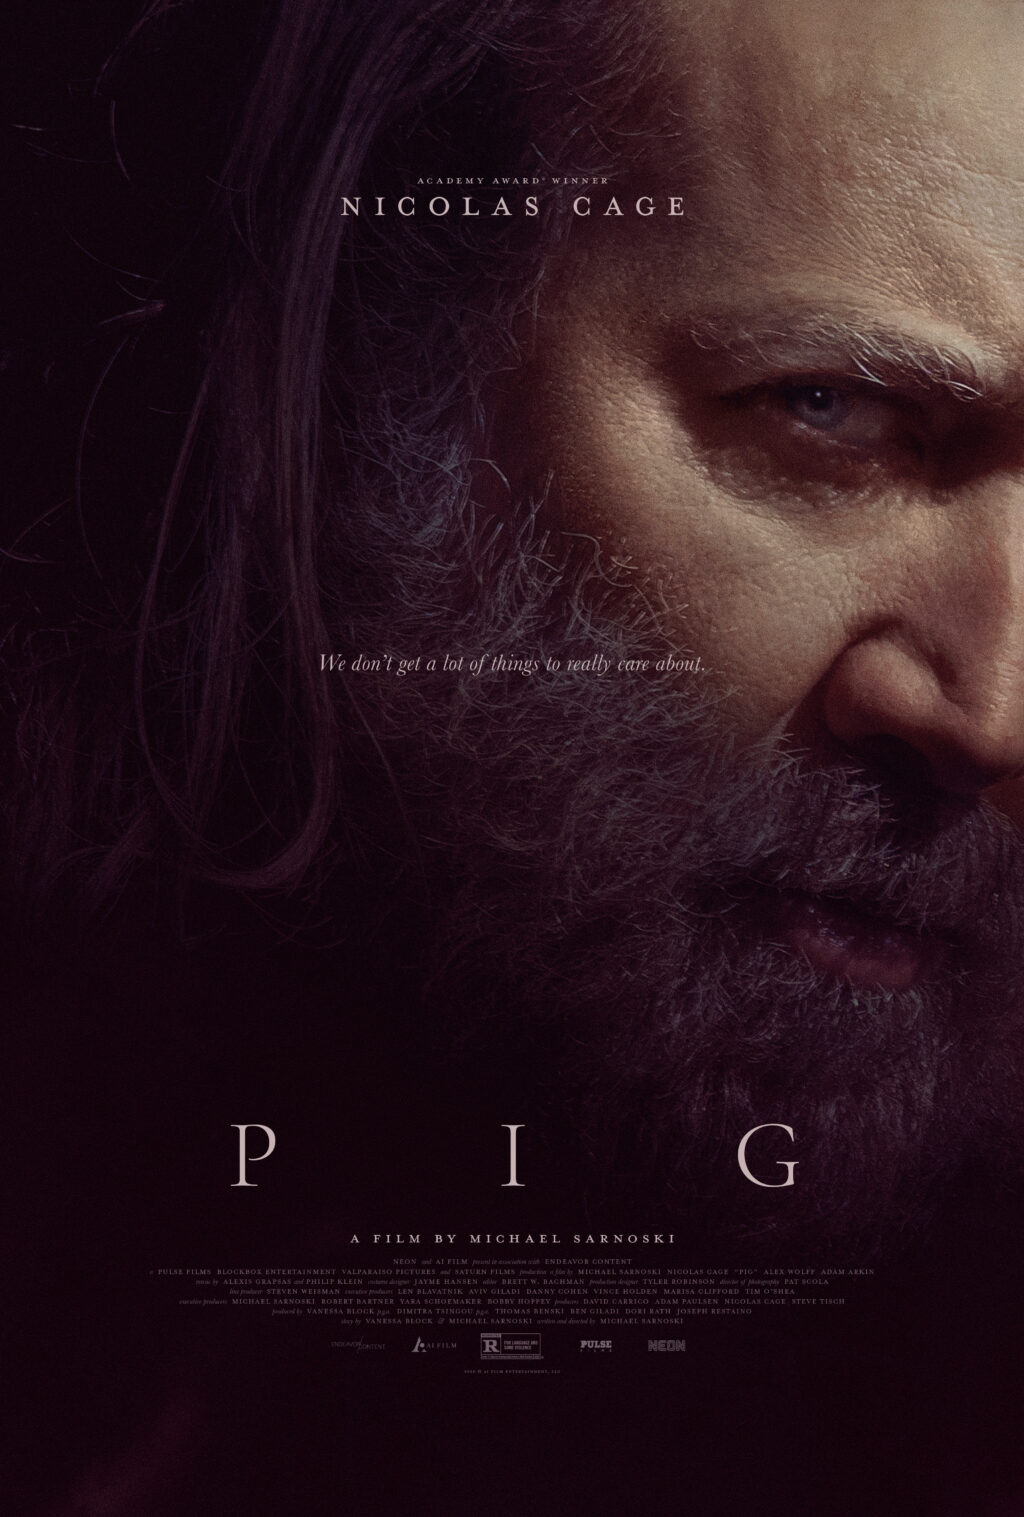 PIG poster 1024x1517 - Interview: Michael Sarnoski on Nicolas Cage & Truffle Pigs in Directorial Debut PIG